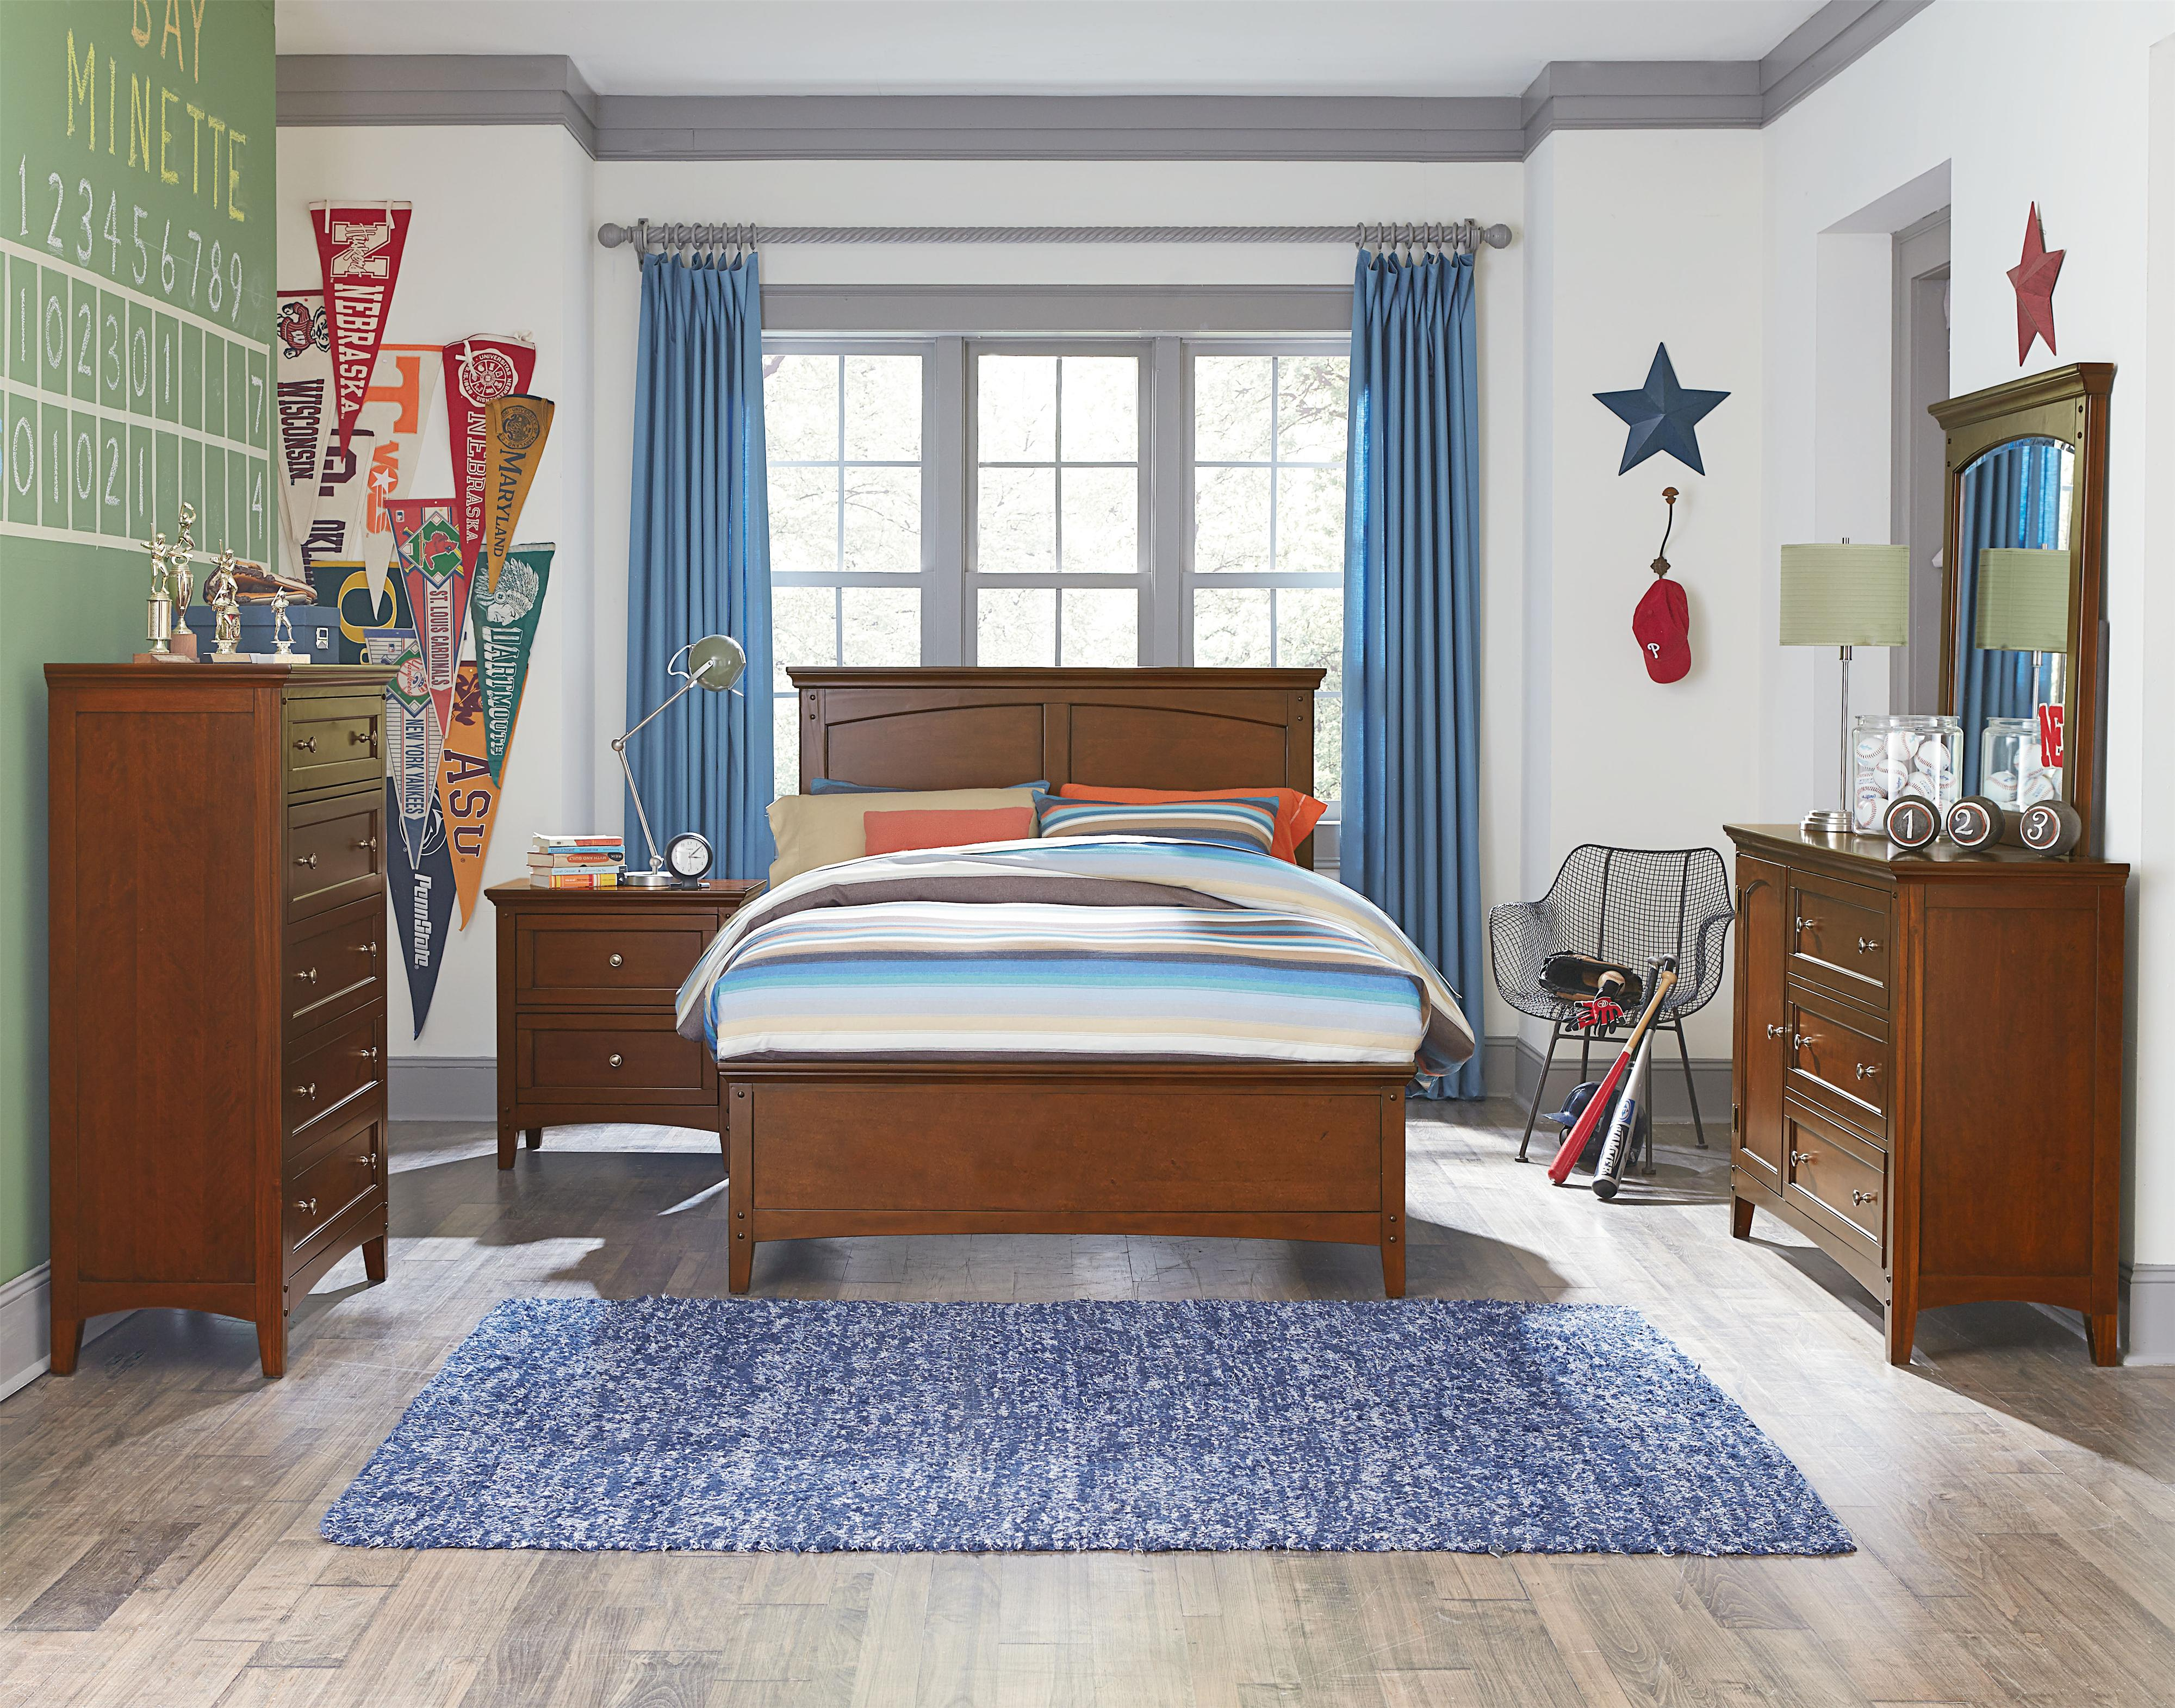 Standard Furniture Cooperstown Twin Bedroom Group - Item Number: 93800 T Bedroom Group 4